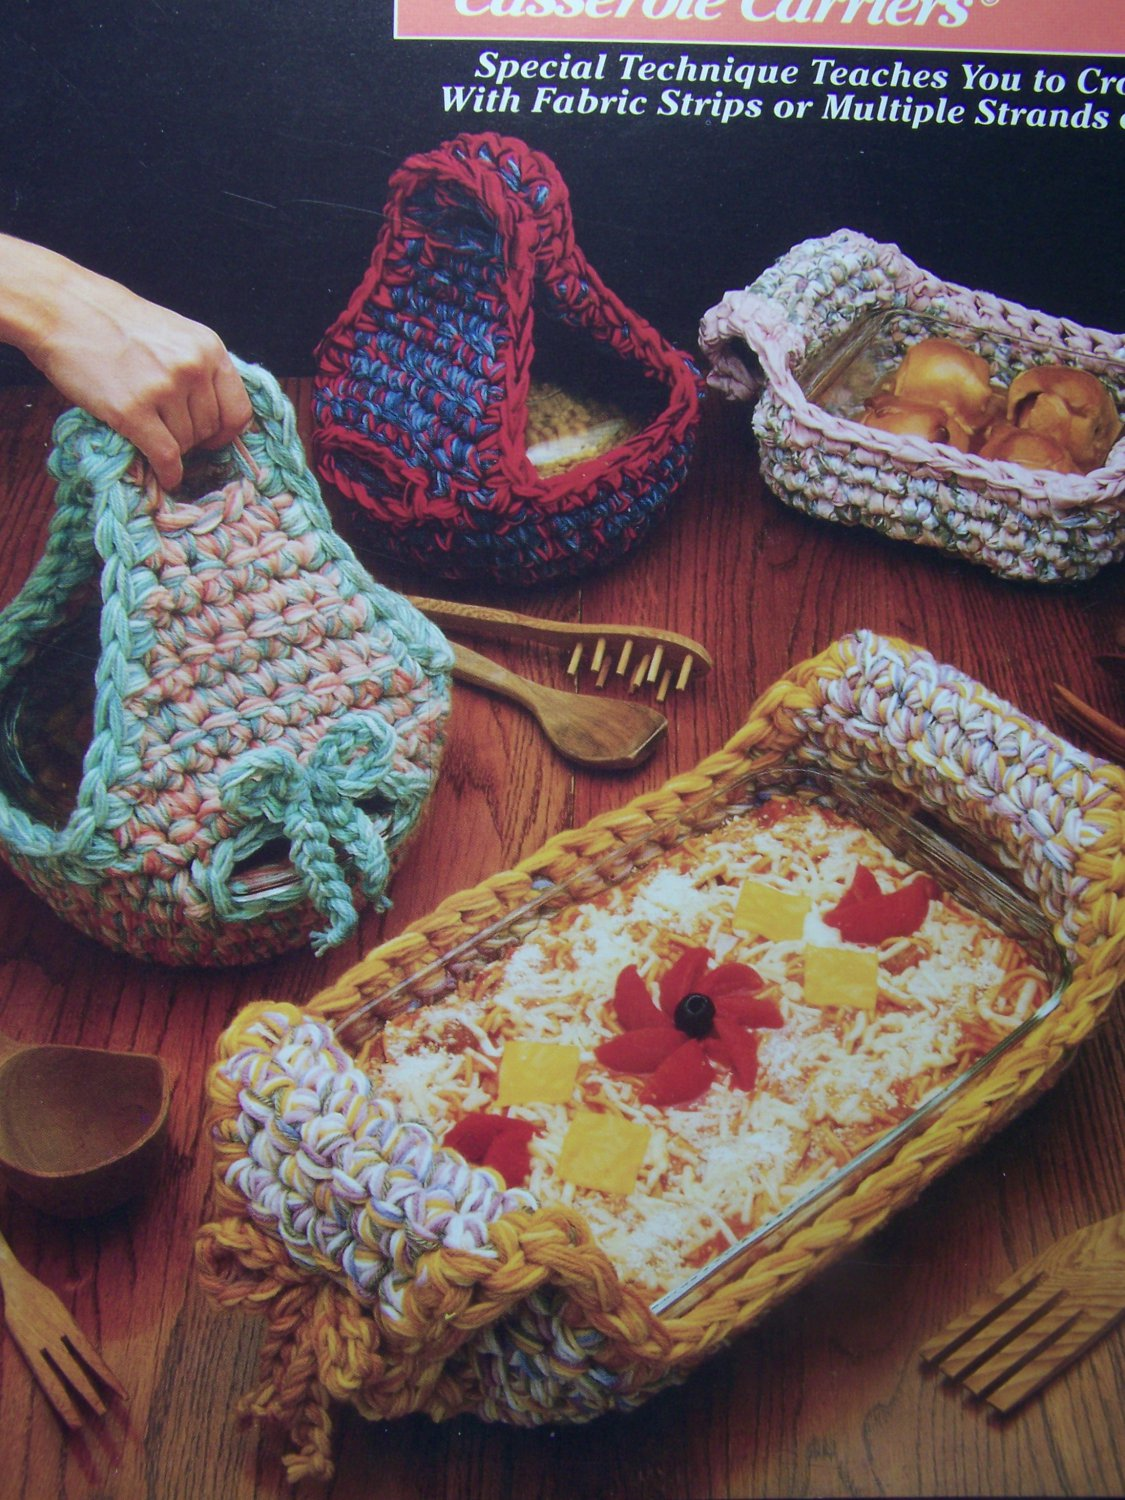 New Annie S Attic Crochet Patterns Casserole Carriers